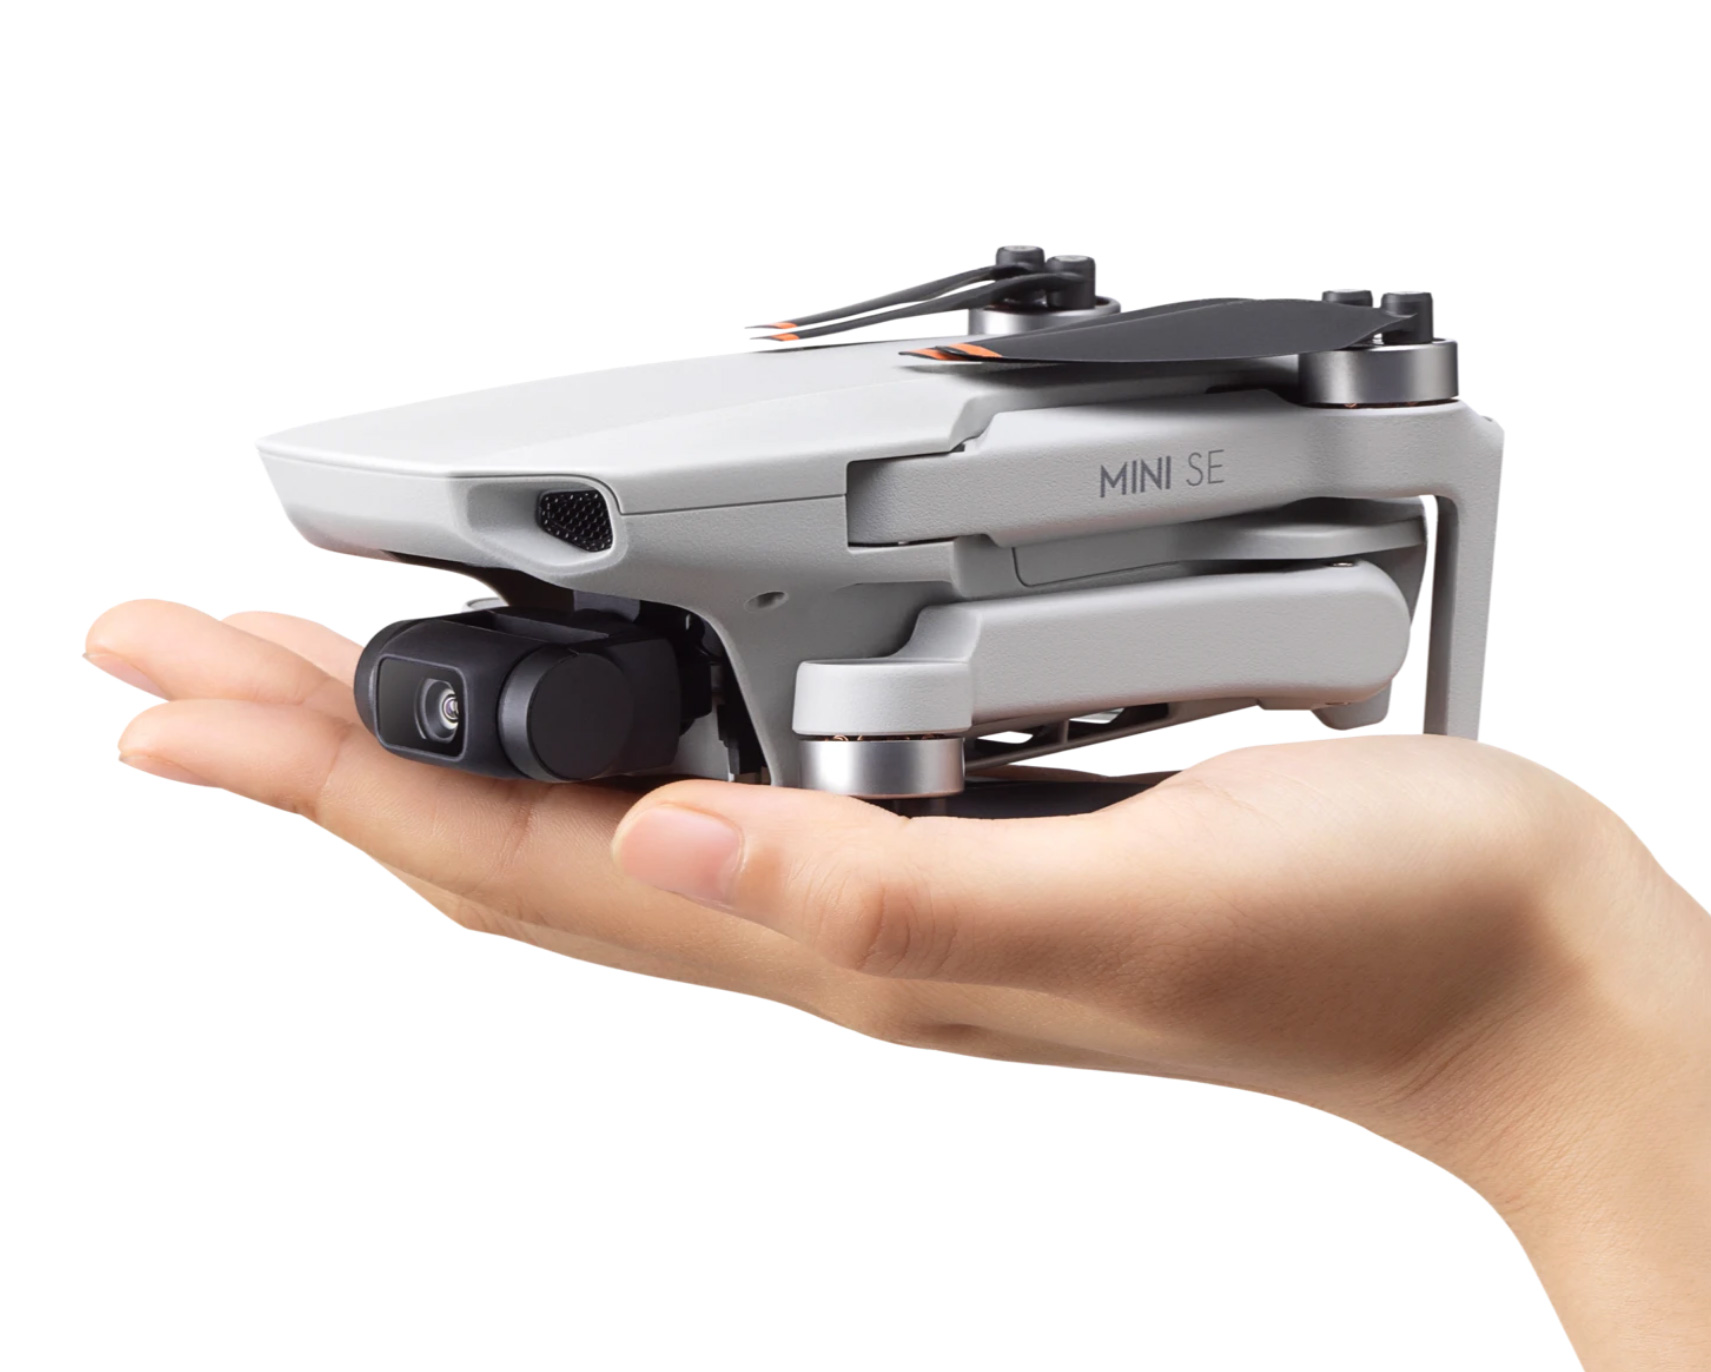 DJI Mini SE Drone Gives You More Freedom to Fly at werd.com